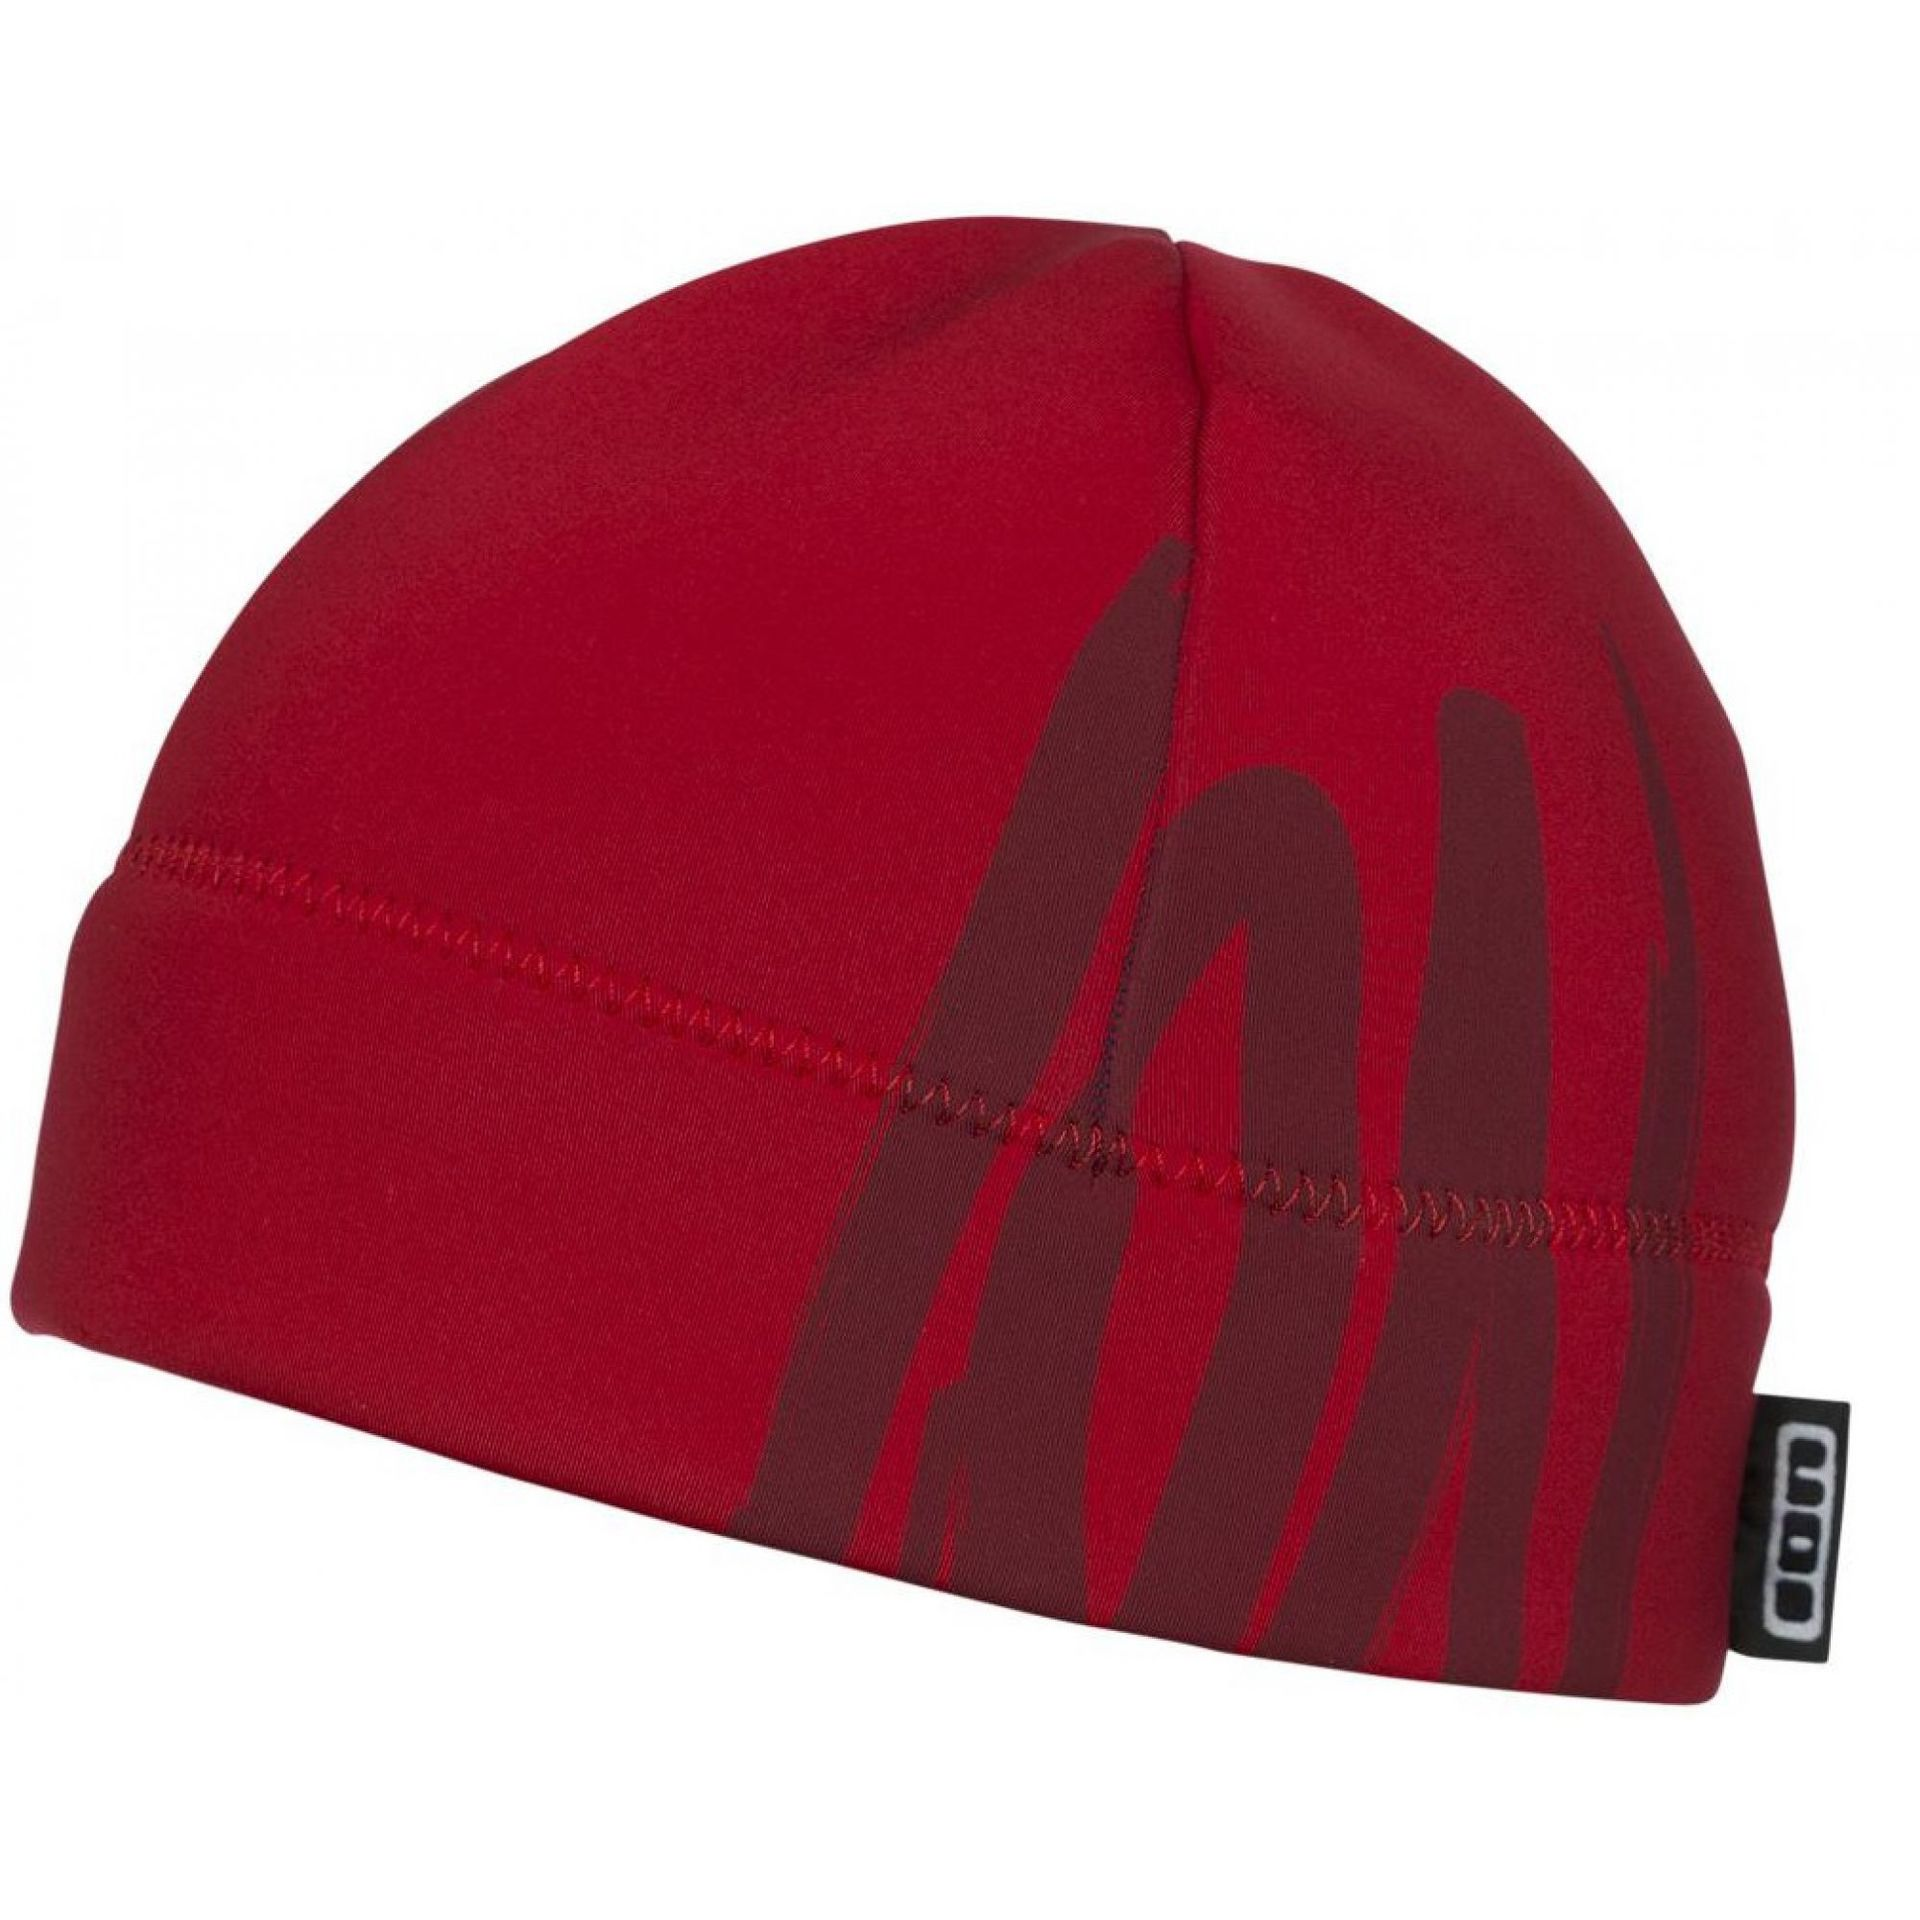 CZAPKA NEOPRENOWA ION NEO LOGO RED